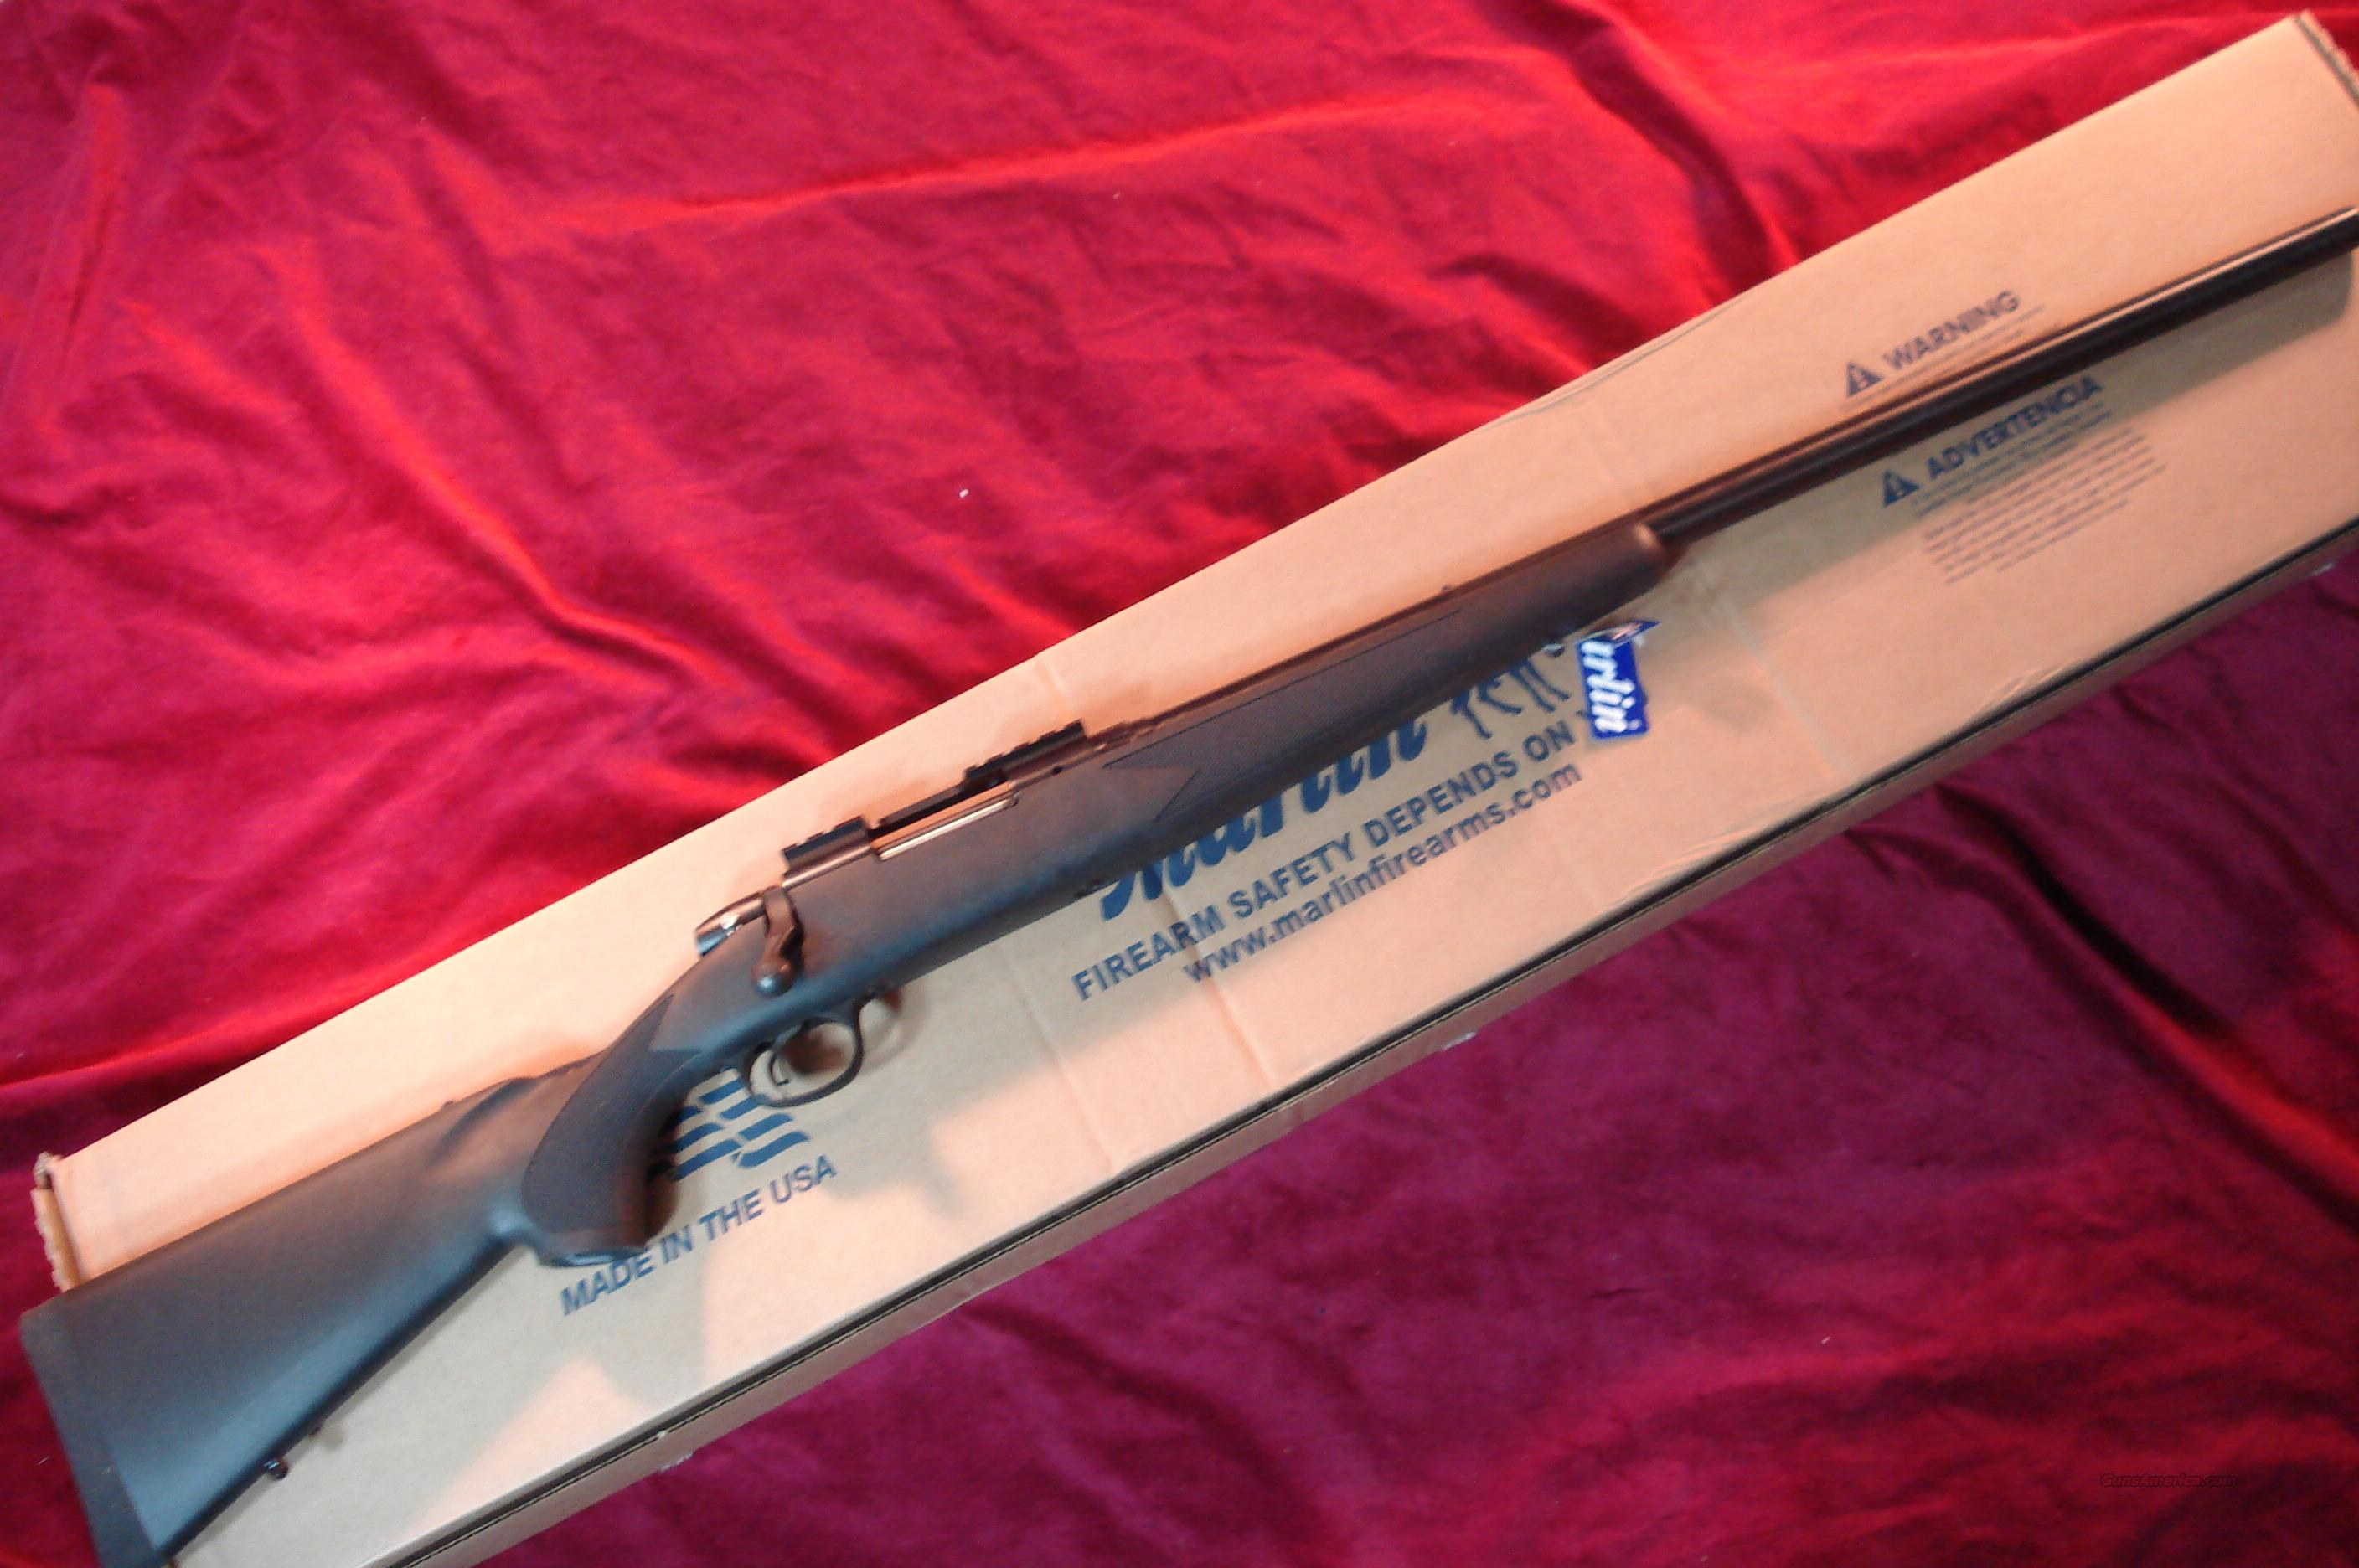 MARLIN XS7VH VARMINT HEAVY 22-250CAL NEW  Guns > Rifles > Marlin Rifles > Modern > Bolt/Pump